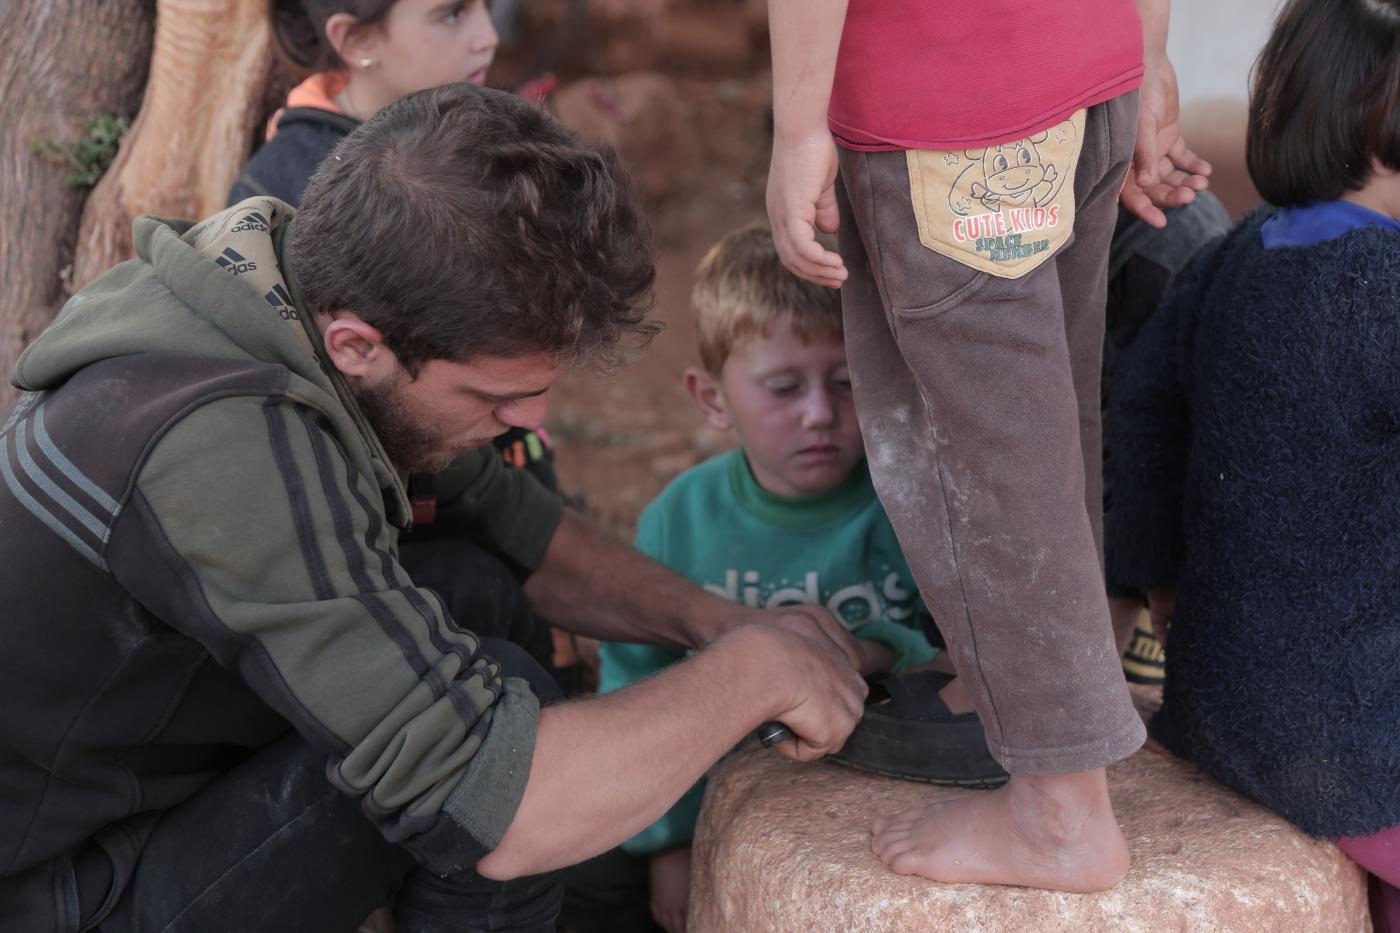 In pictures: A Syrian man makes shoes out of tyres for displaced children